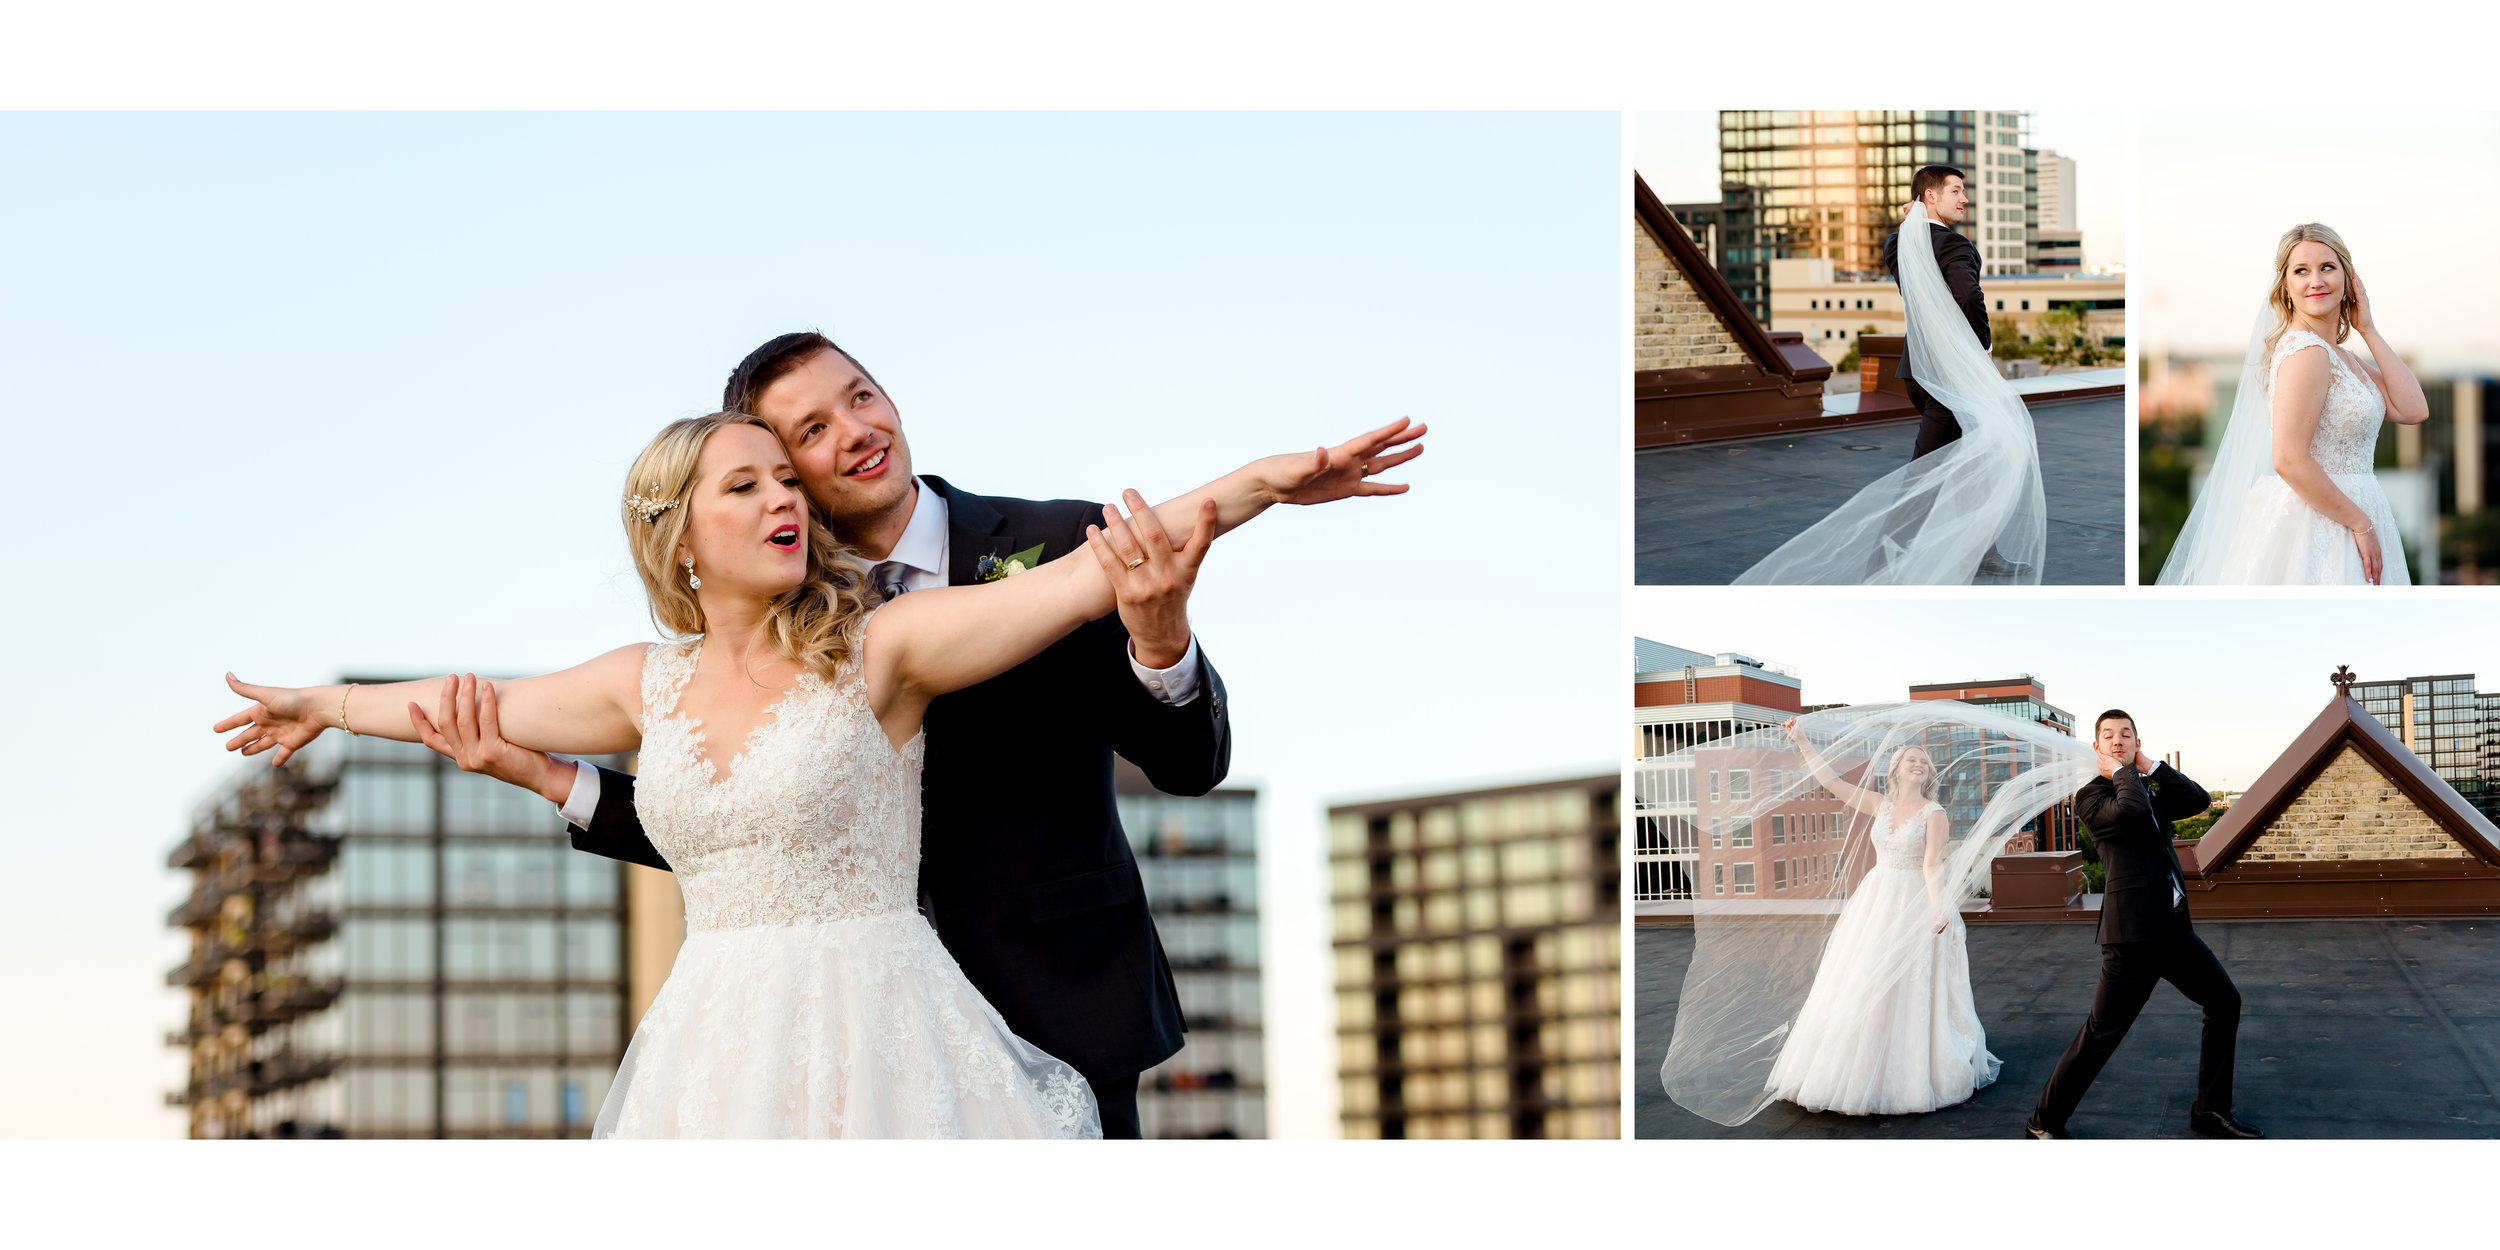 Kristen + Eric - Wedding Album Sample_44.jpg